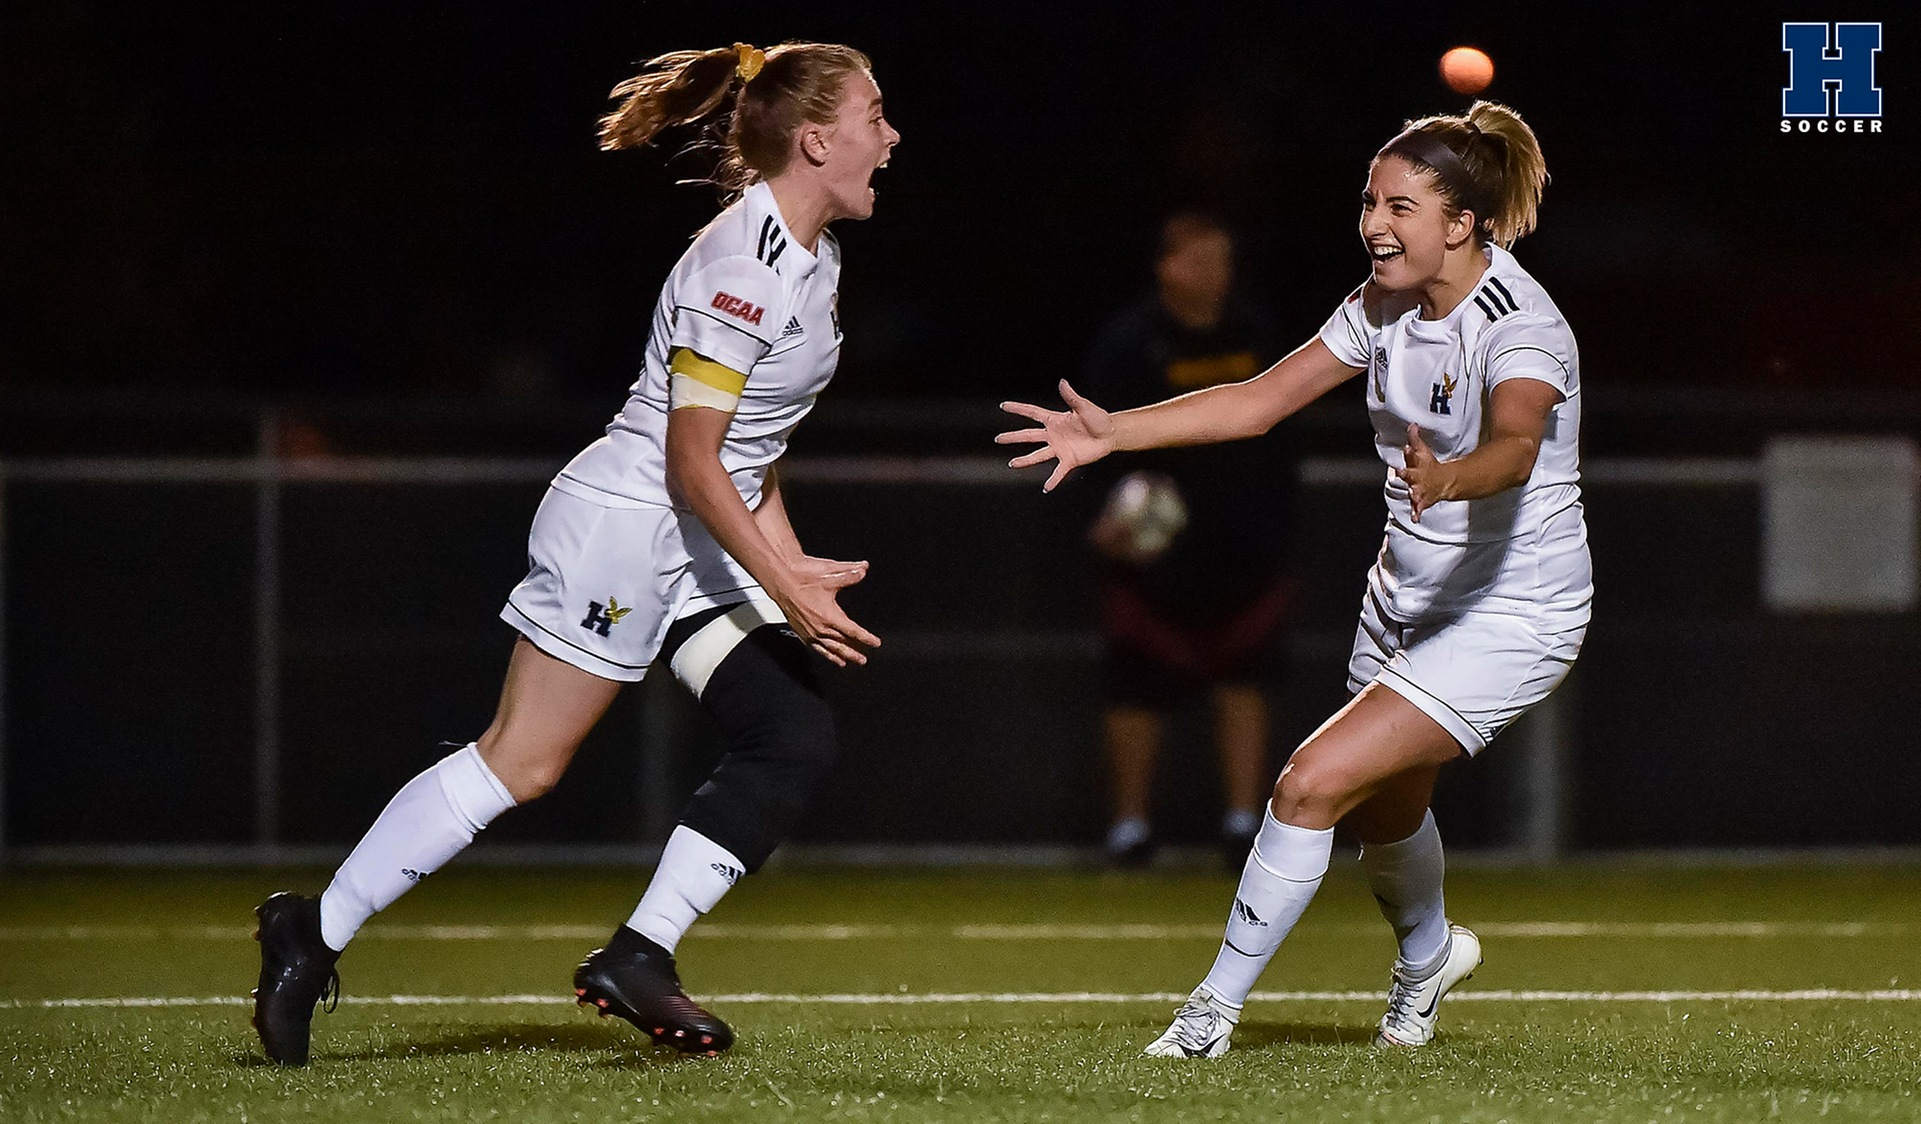 Late Game Heroics From Stushnoff Lifts Humber Over Sheridan, 3-2